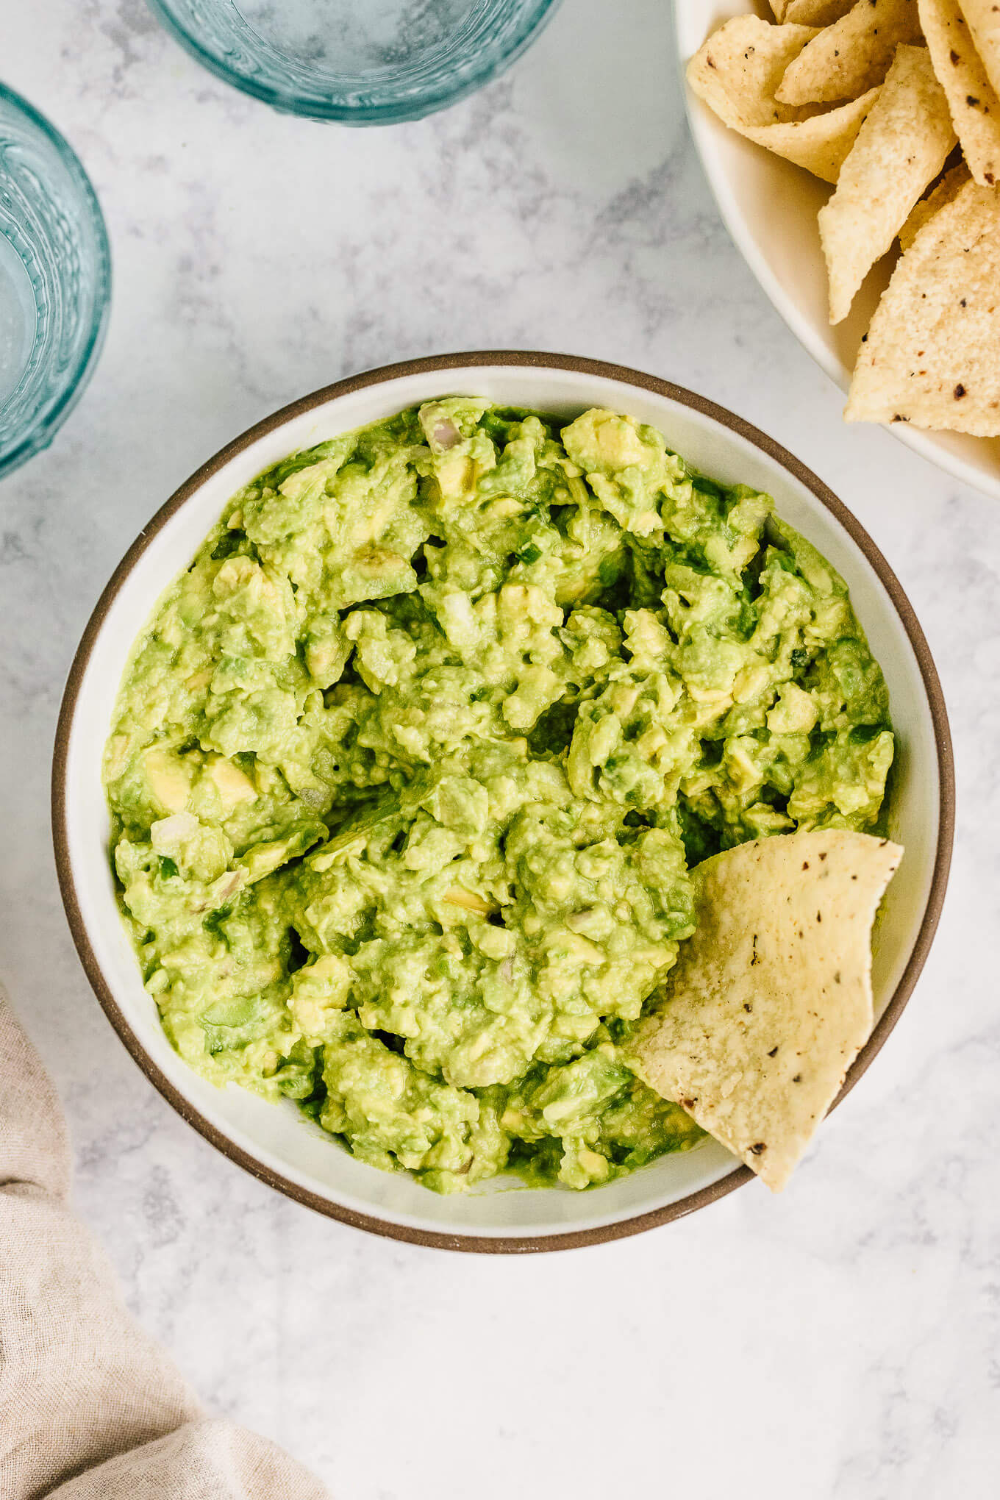 Can You Substitute Lime For Lemon In Guacamole The Best Guacamole Recipe Nourished By Nutrition Recipe In 2020 Best Guacamole Recipe Guacamole Recipe Guacamole Recipe Easy